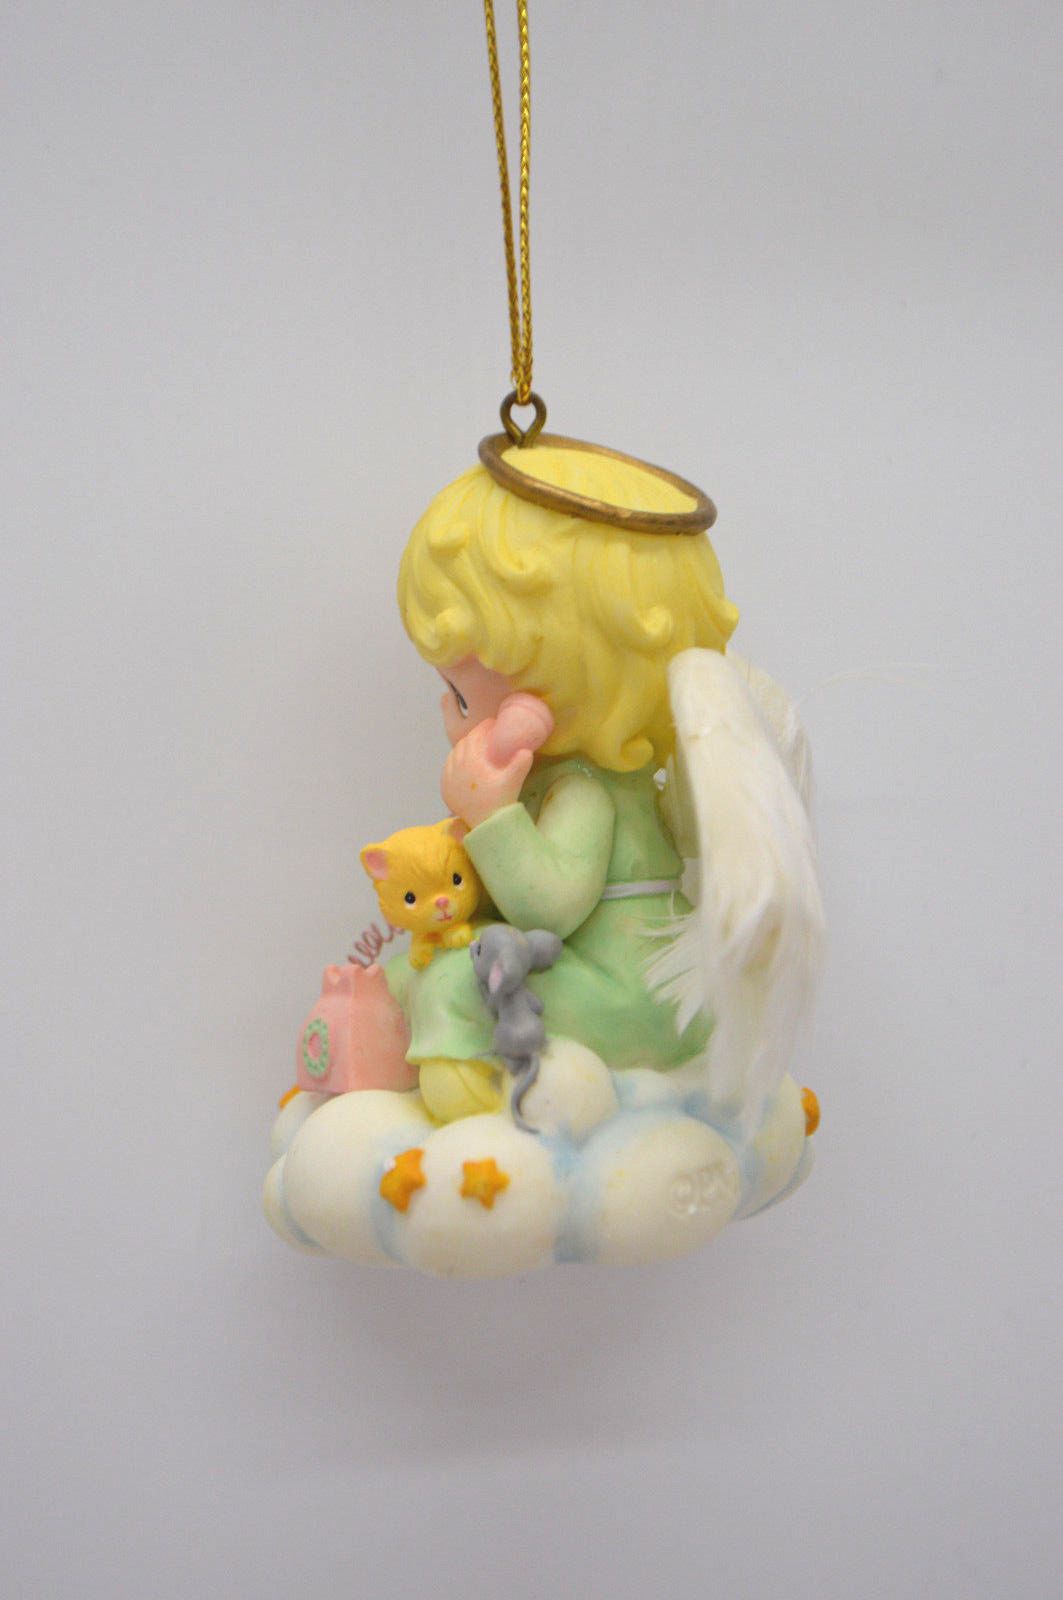 Bradford Exchange Precious Moments Life's Little Lessons Ornament A02540